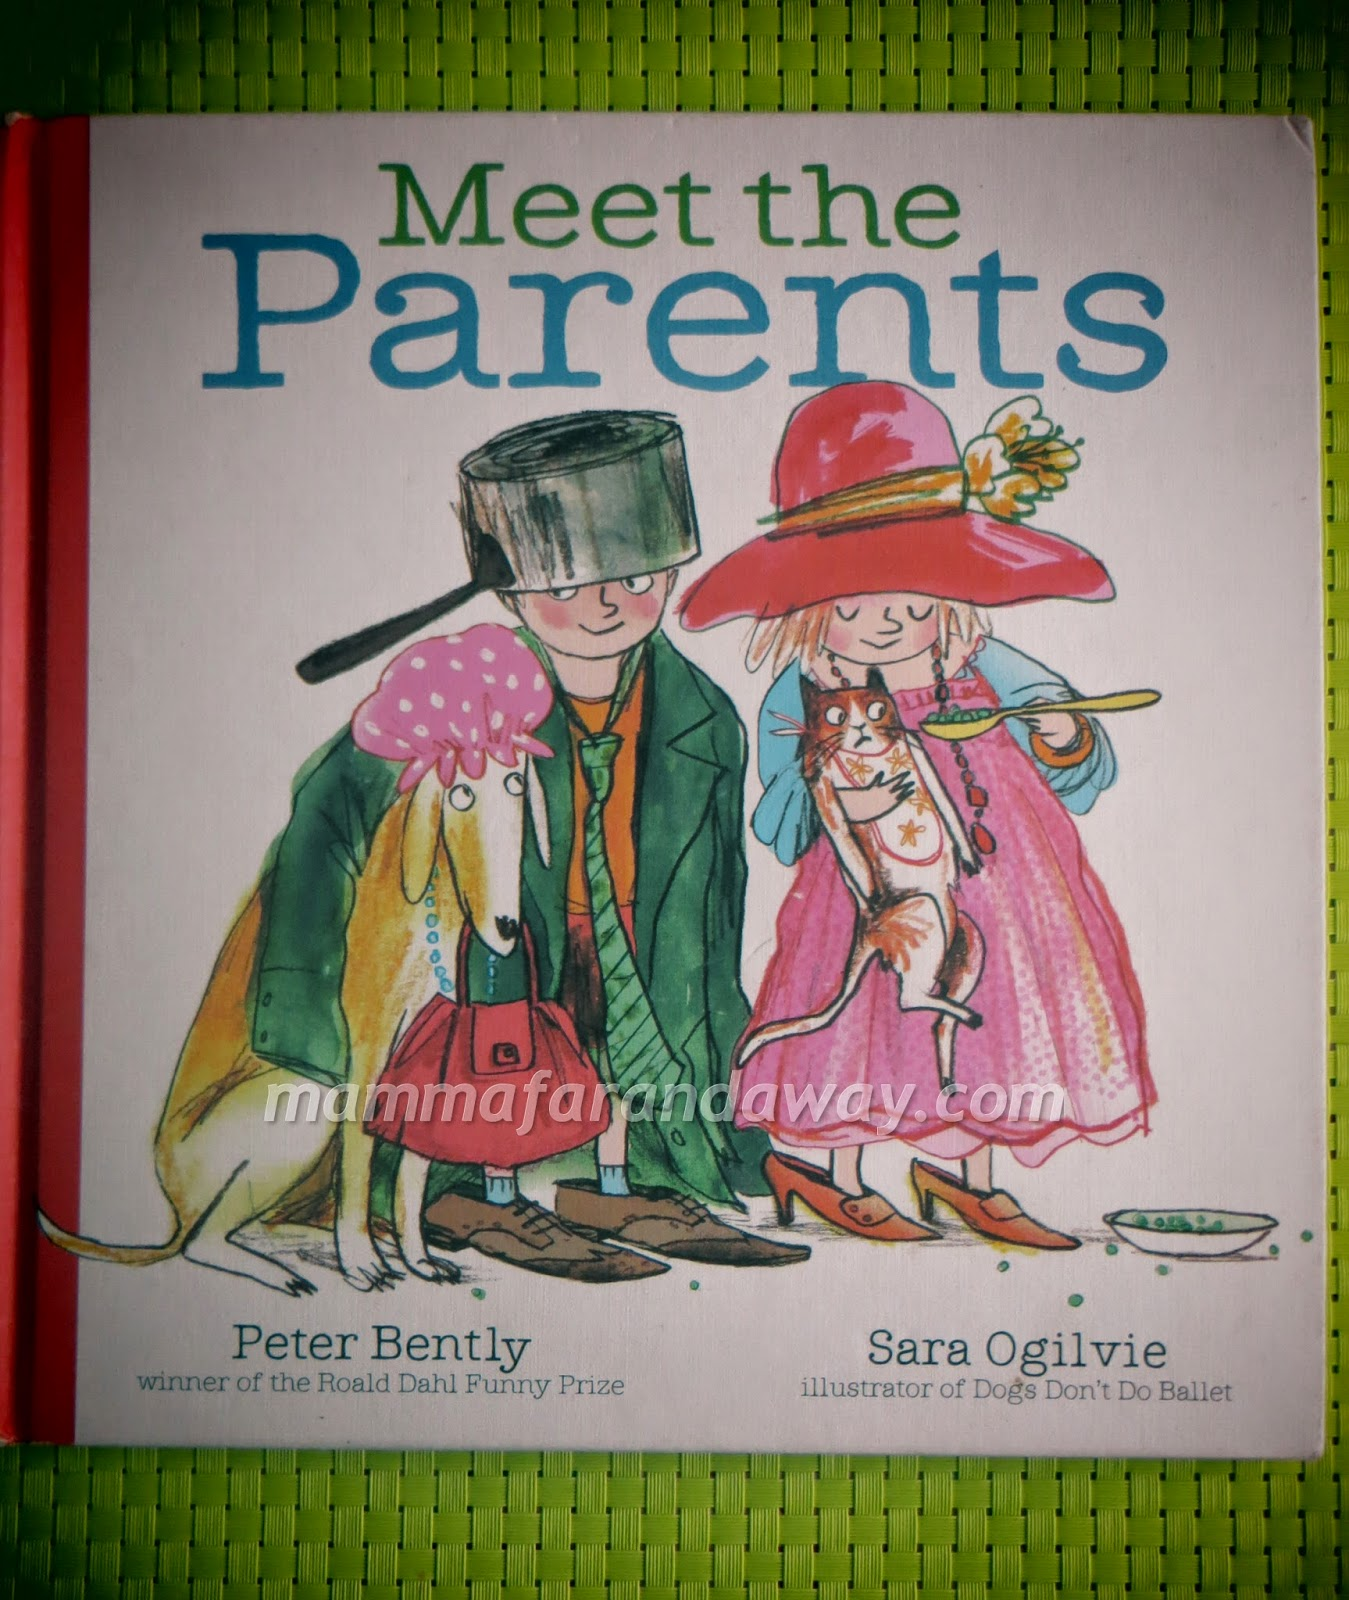 http://www.bookdepository.com/Meet-the-Parents/9780857075826/?a_aid=Mammafarandaway